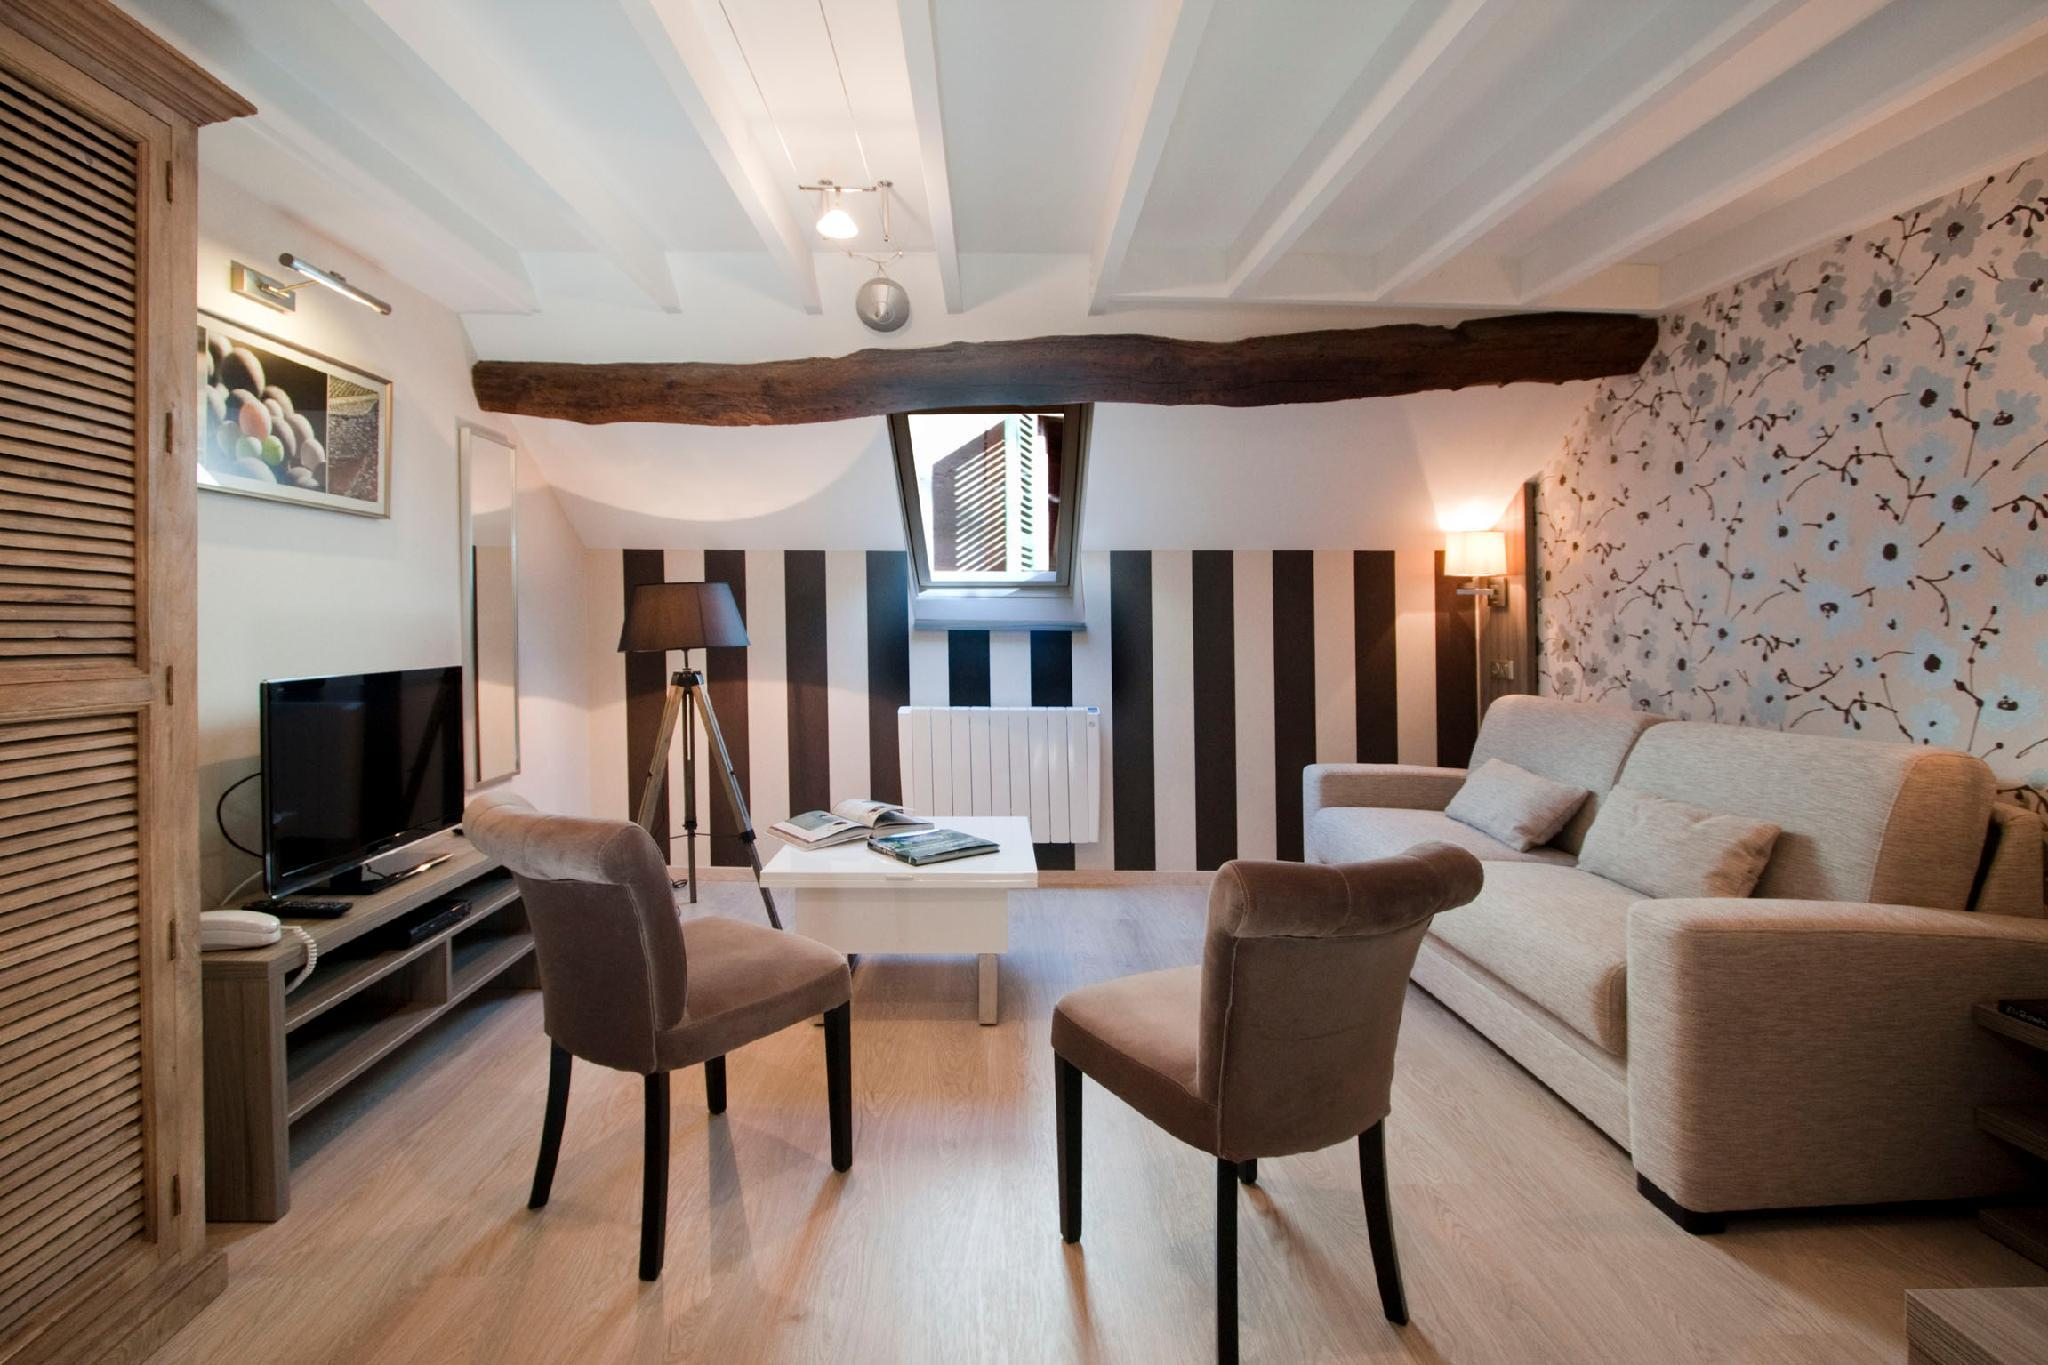 Modern Duplex**** In The Heart Of Nuits St Georges